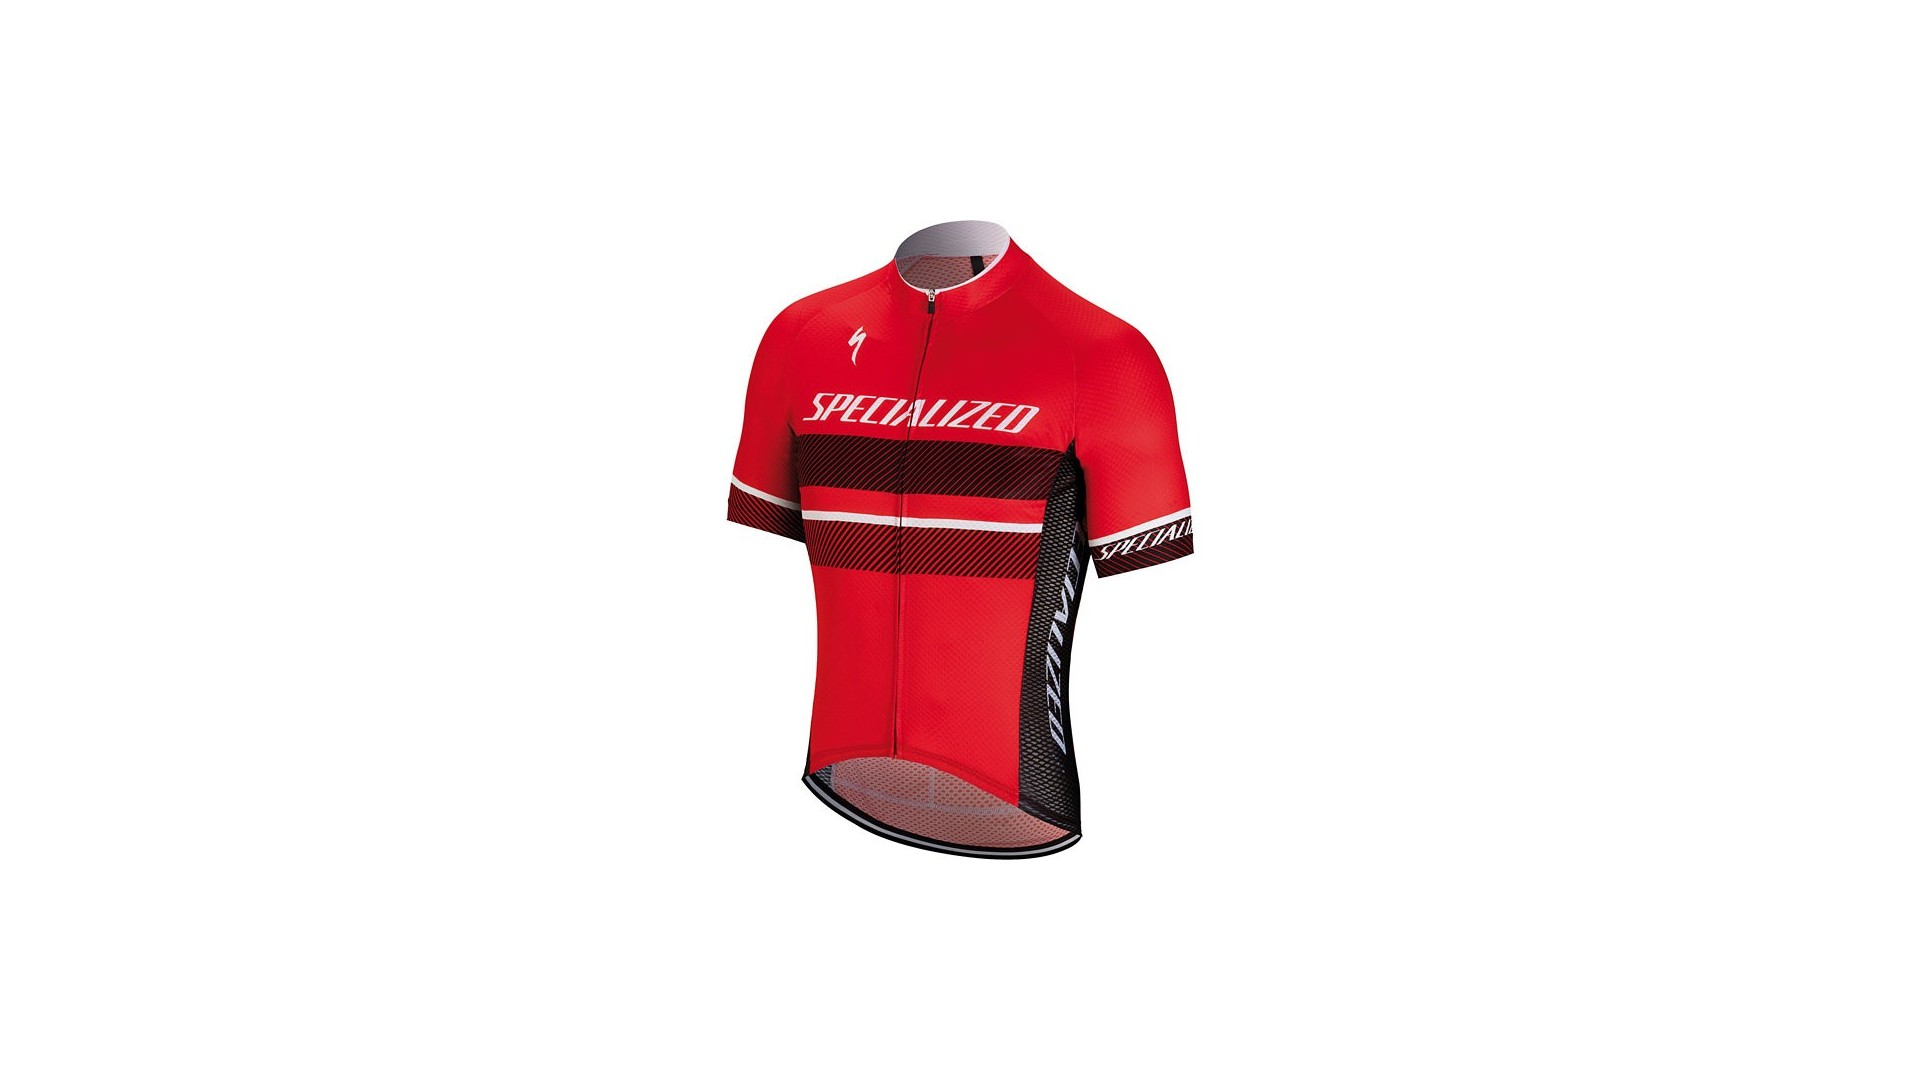 Rbx Comp Logo Maillot Specialized Red/Black 1 IBKBike.es